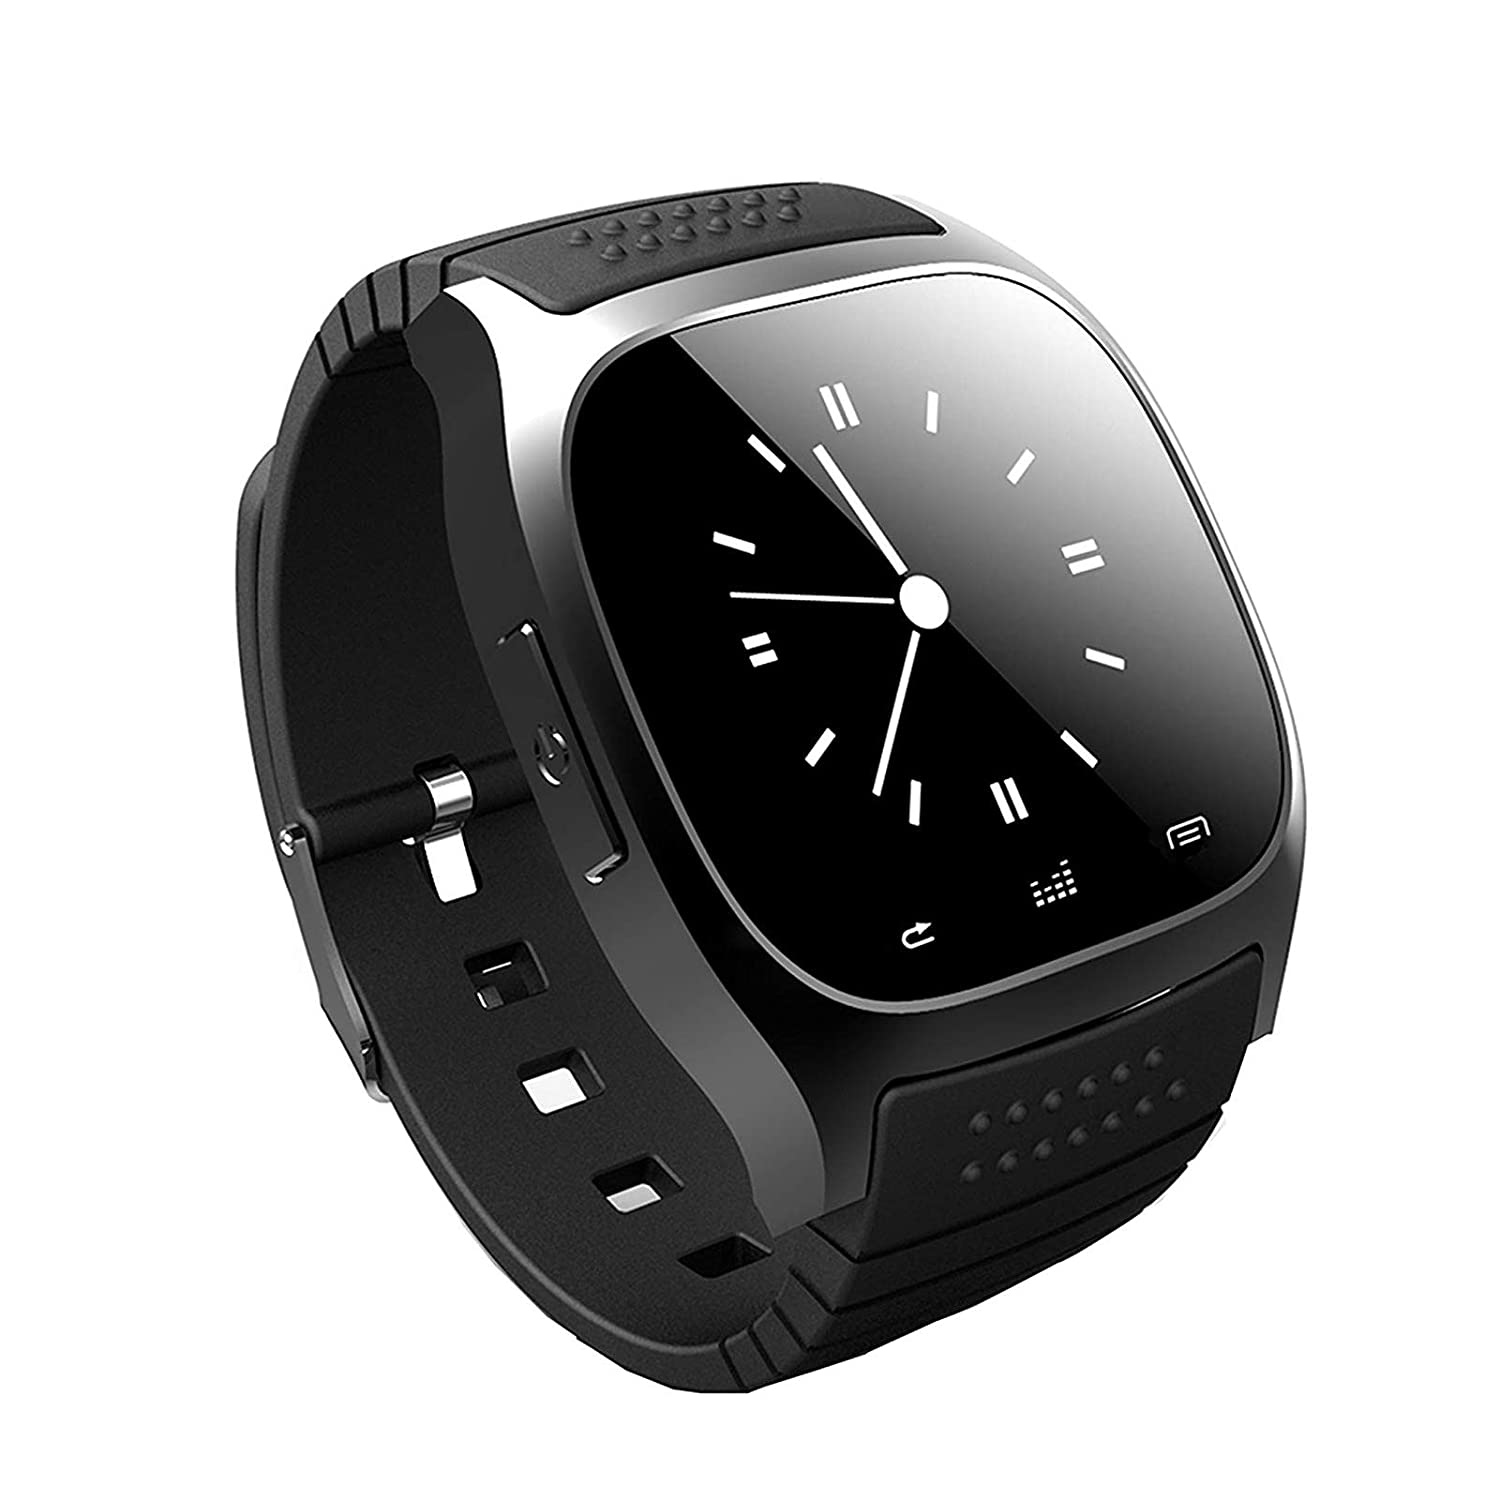 Amazon.com: Smart Watch Bluetooth Smartwatch Phone Touch ...